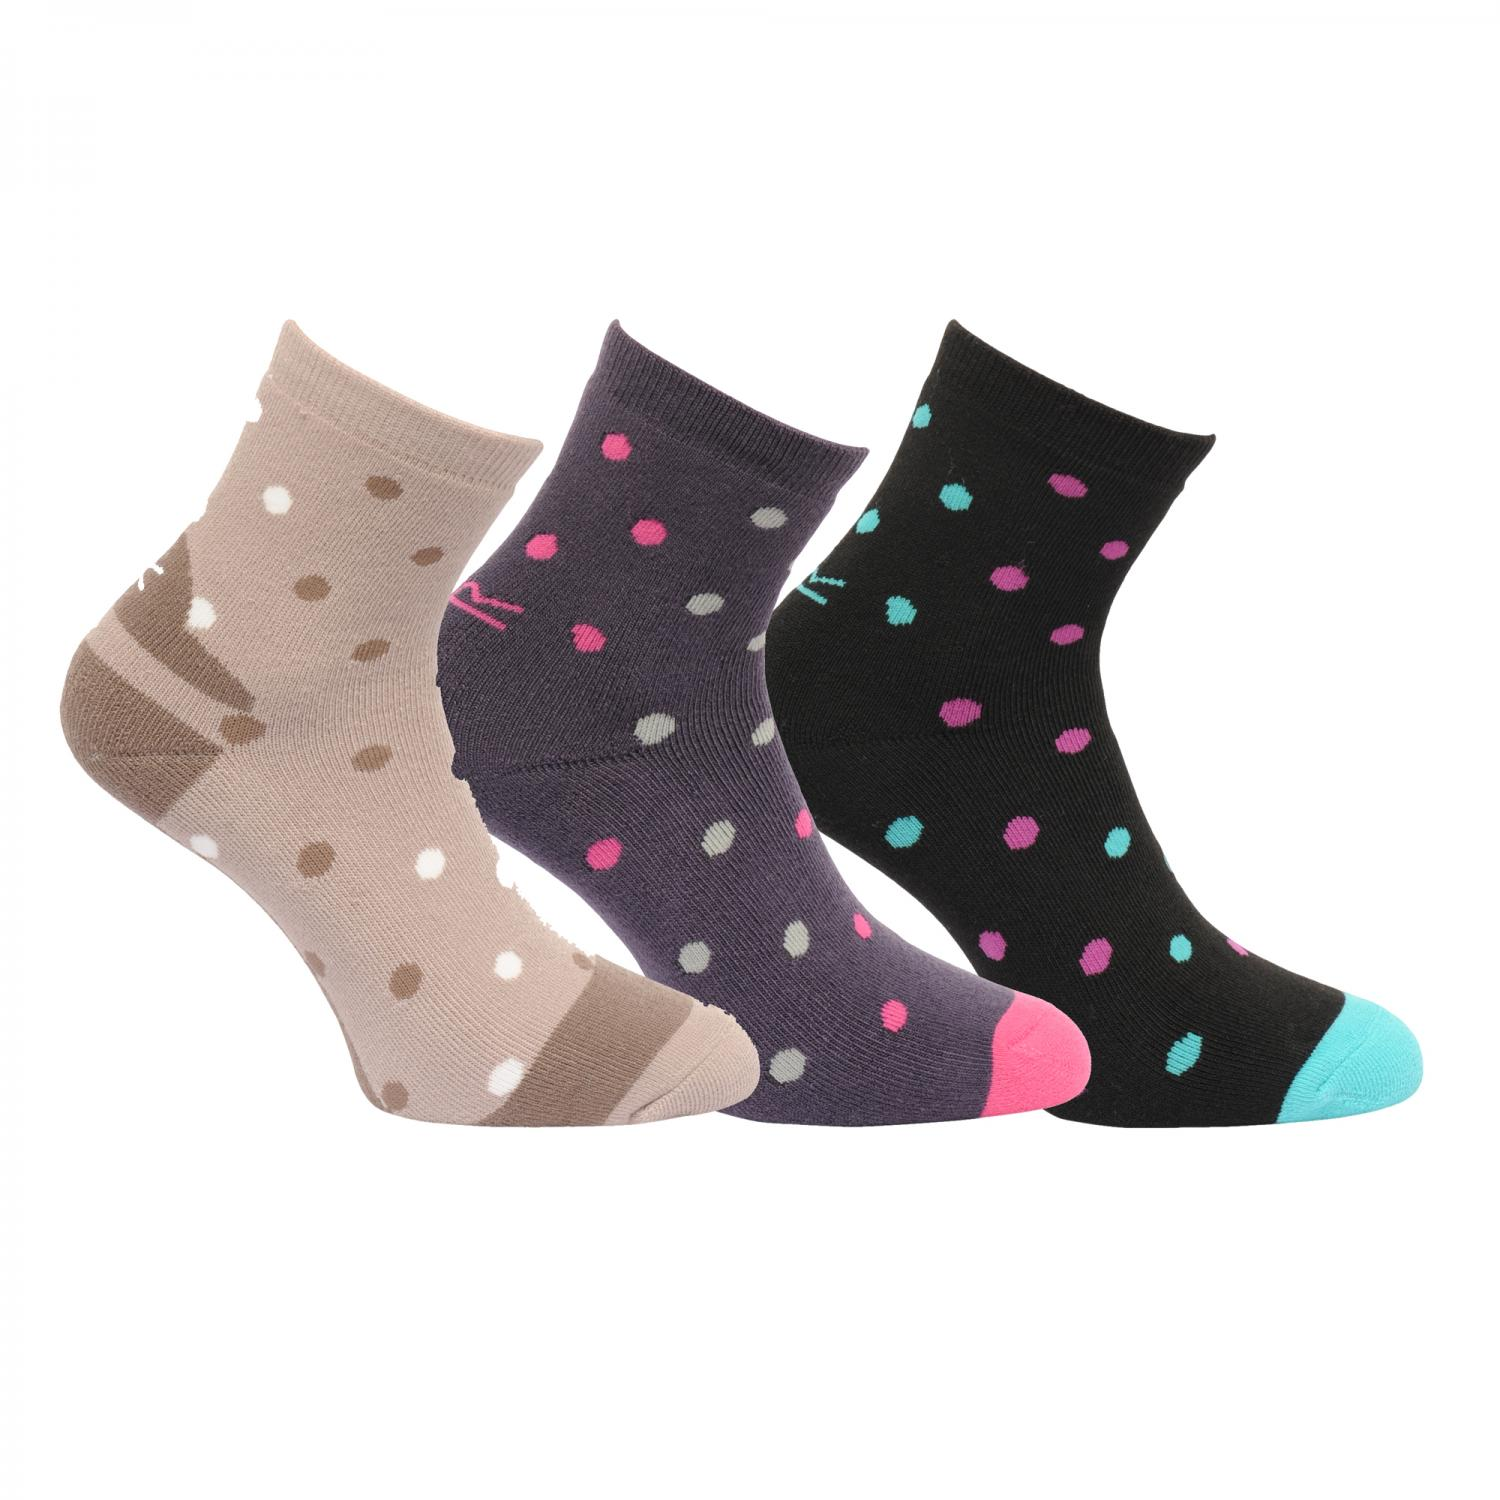 Womens 3 Pack Active Lifestyle Socks Barley Black Blue